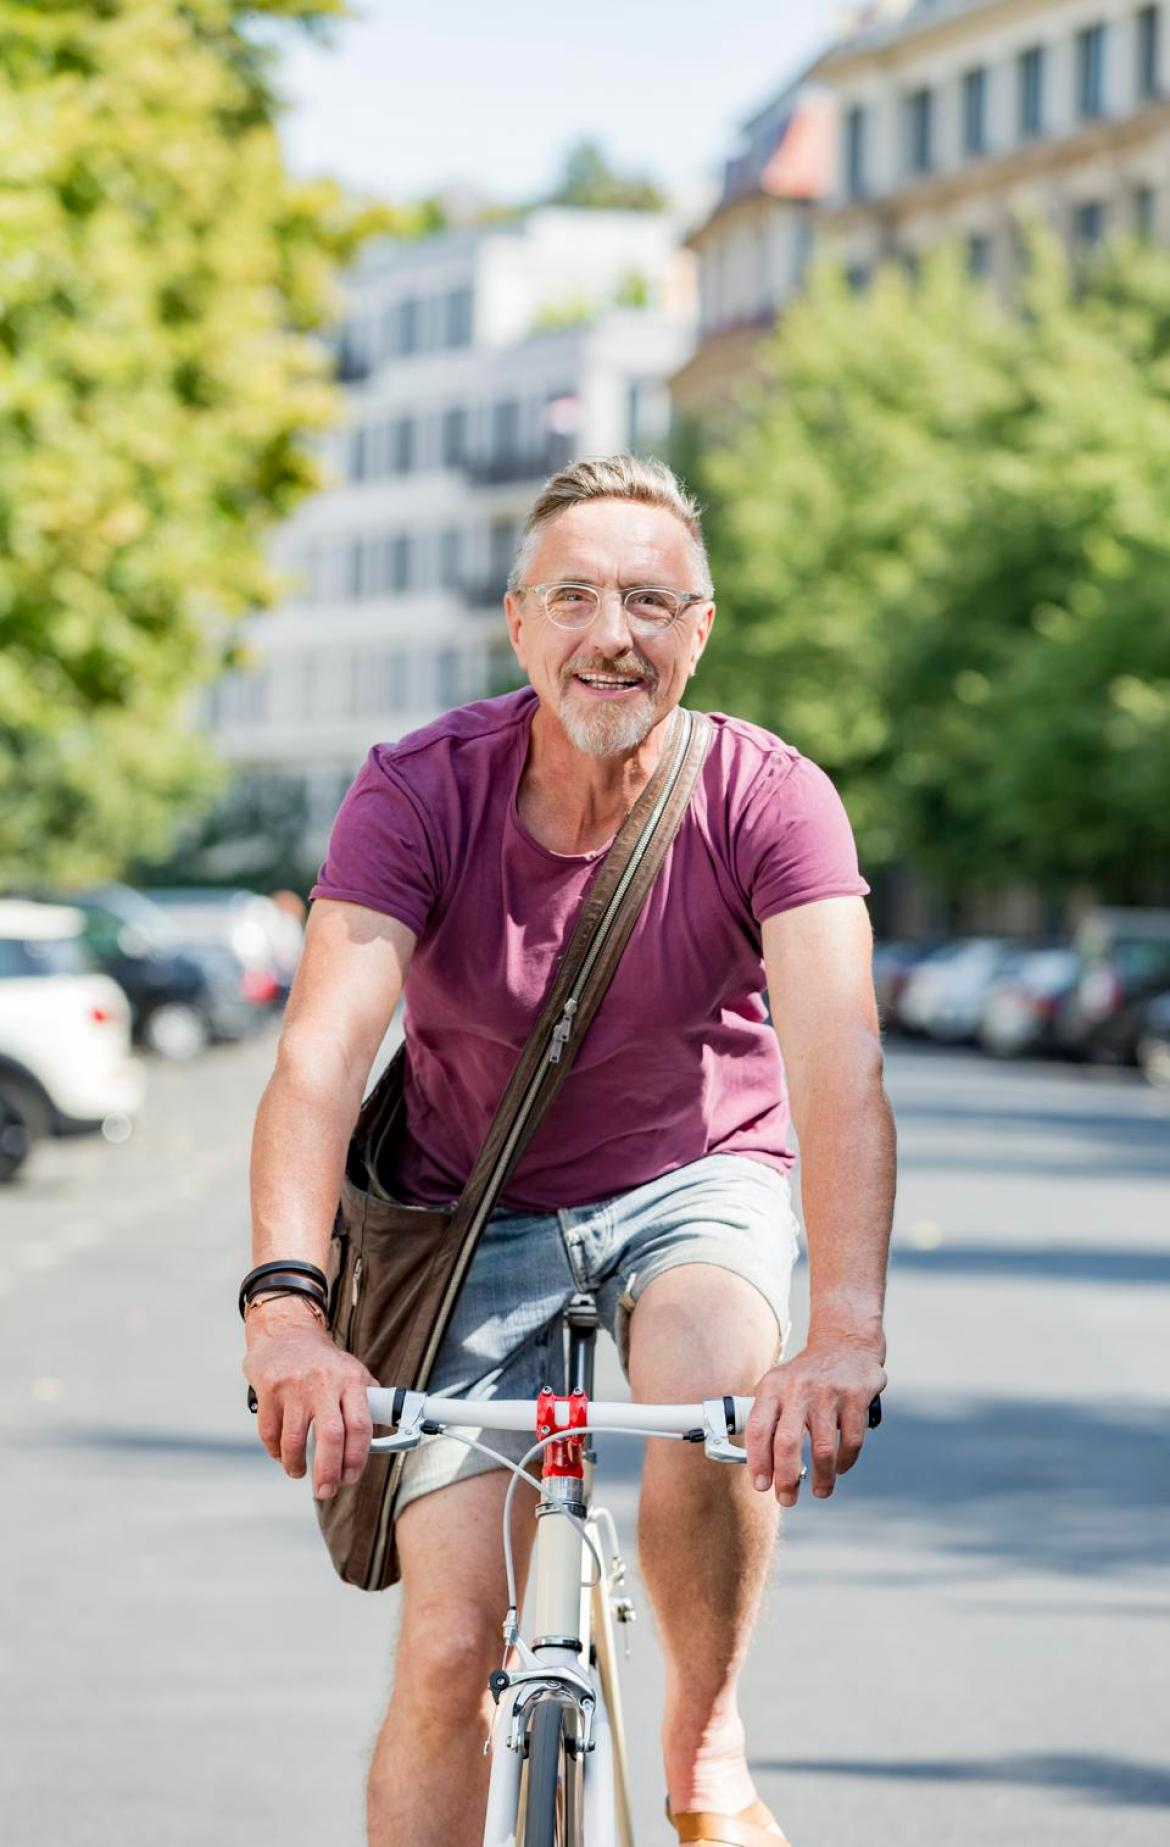 Active senior man in his early 60s enjoys city life in summer.